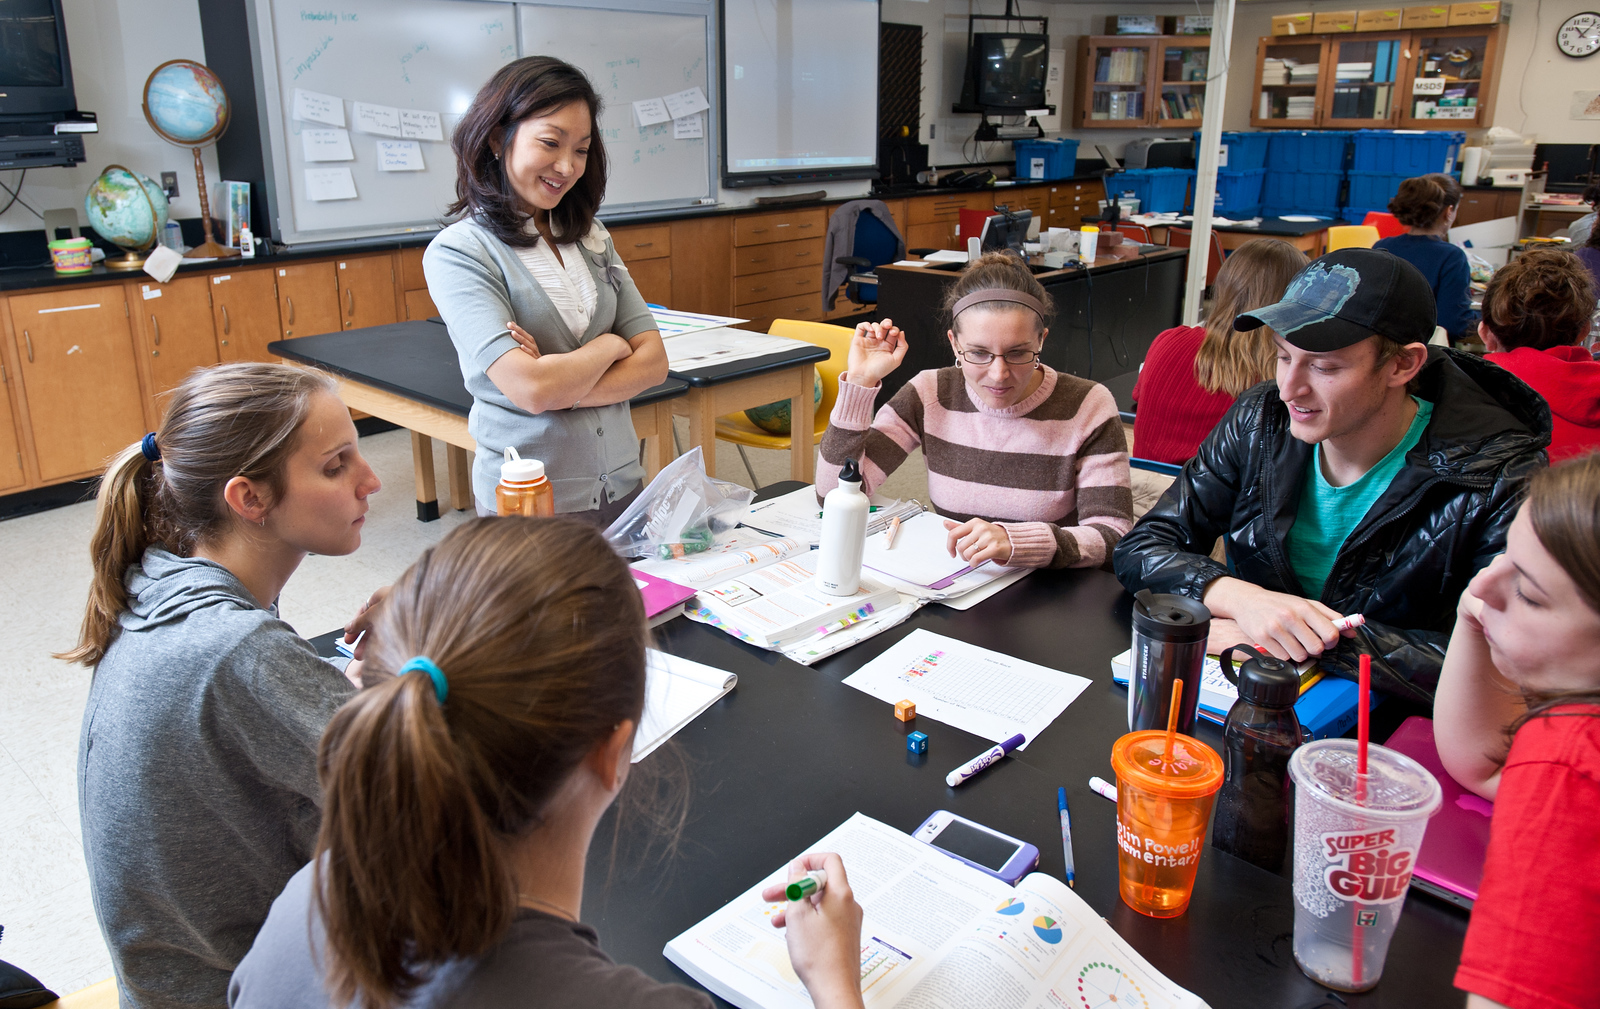 Jennifer Suh, Assistant Professor, Graduate School of Education, College of Education and Human Development teaches an EDCI 552 course, Mathematics Methods for the Elementary Classroom, at George Mason University's Fairfax Campus. Photo by Alexis Glenn